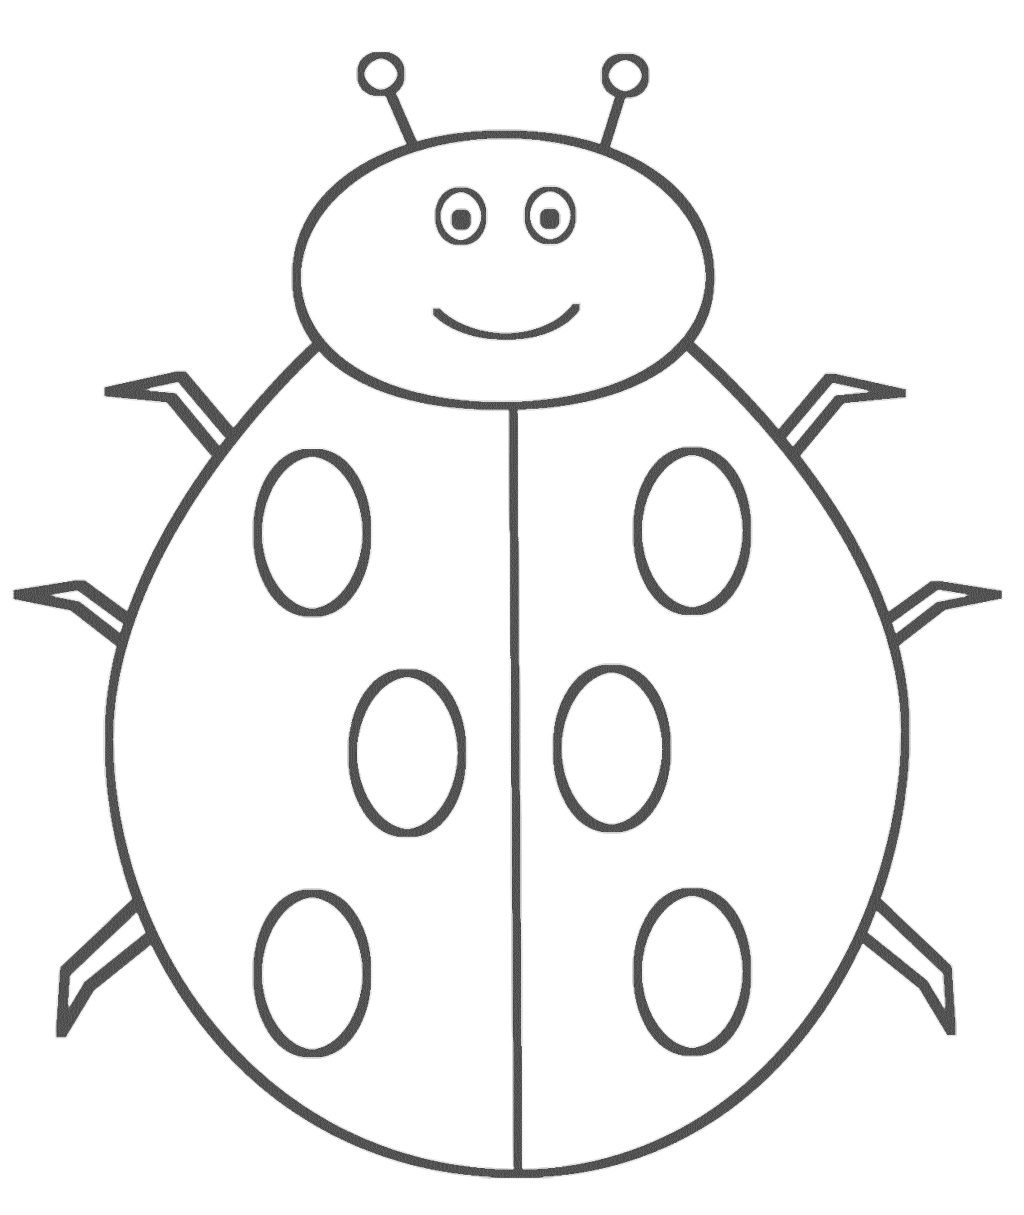 coloring page ladybug ladybug coloring pages coloring pages to download and print coloring ladybug page 1 1